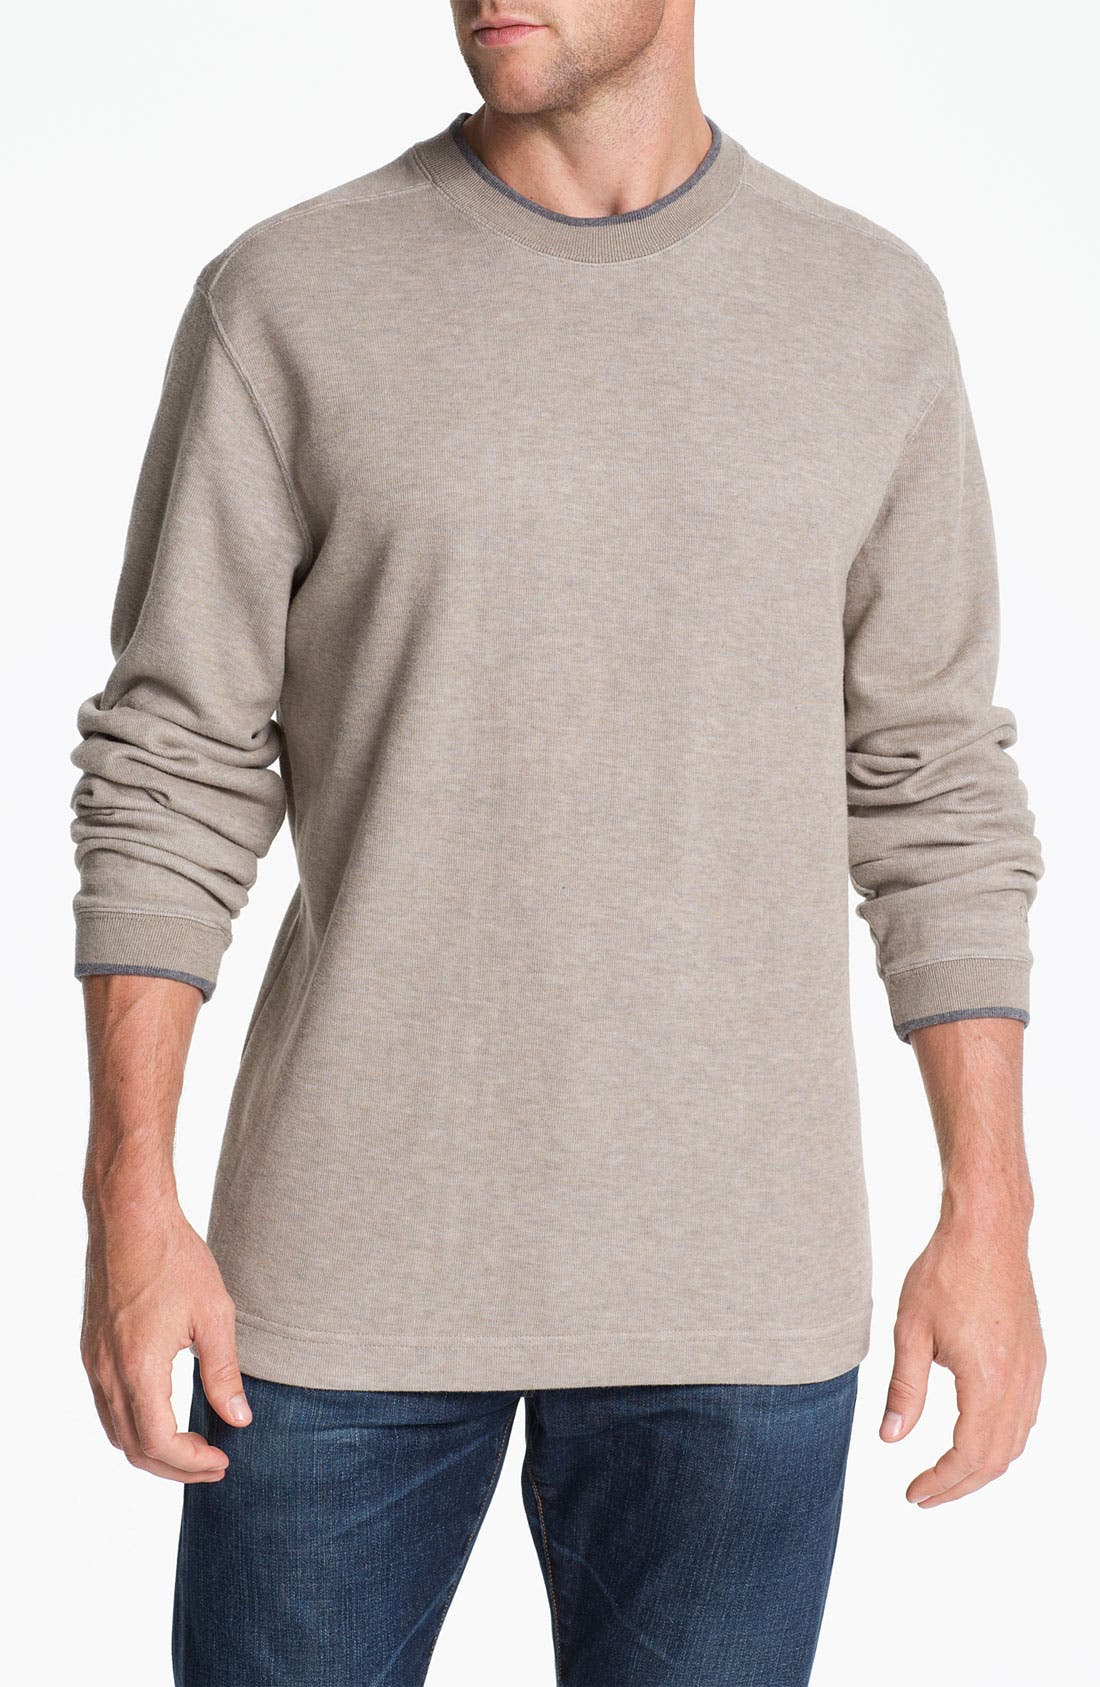 Alternate Image 1 Selected - Quiksilver 'Rock Lagoon' Crewneck T-Shirt